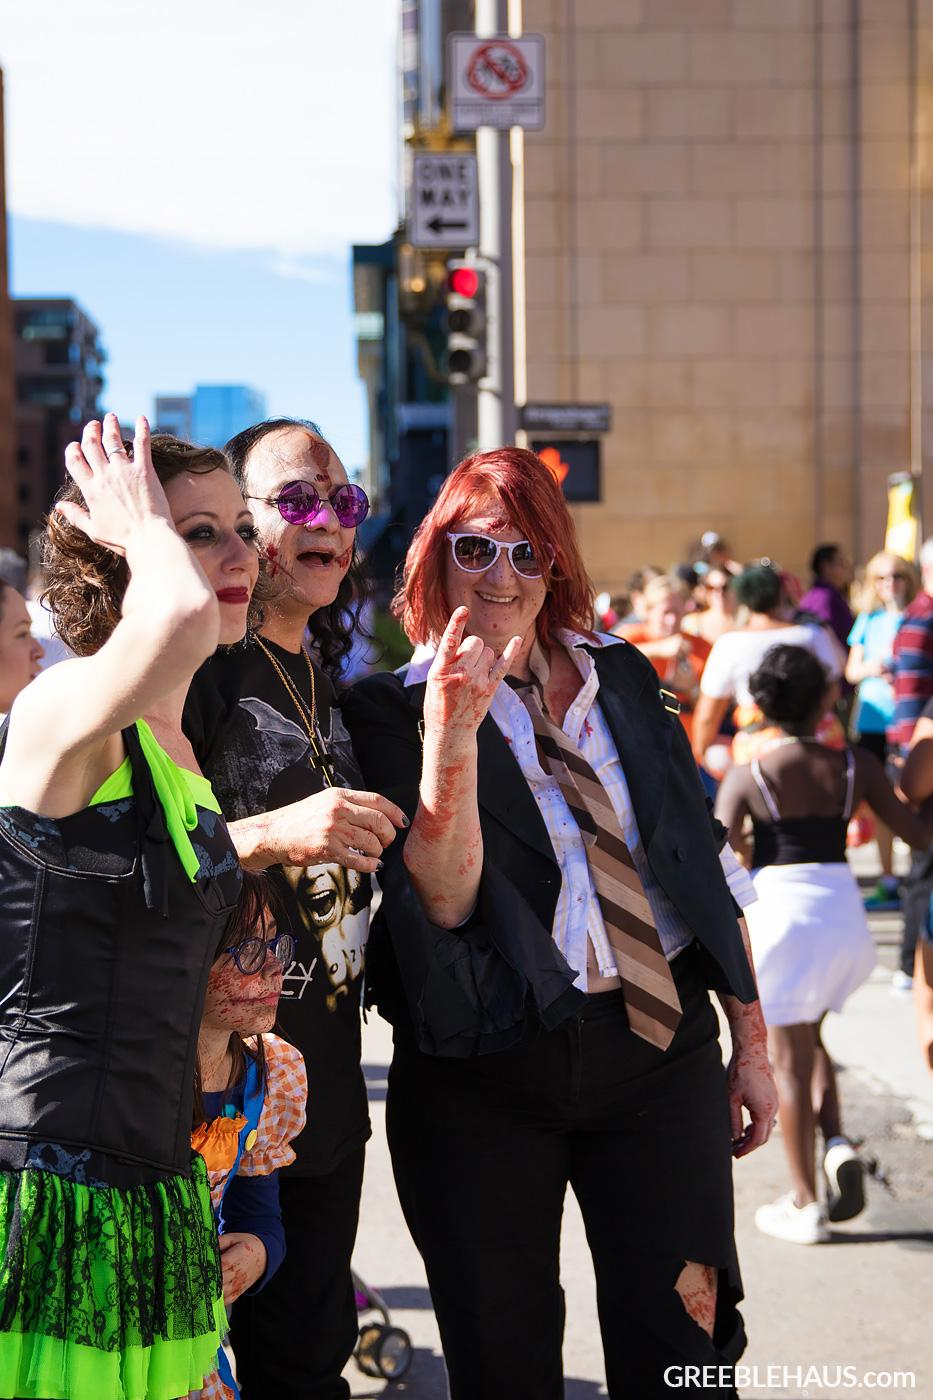 Photos from Denver Zombie Crawl 2017